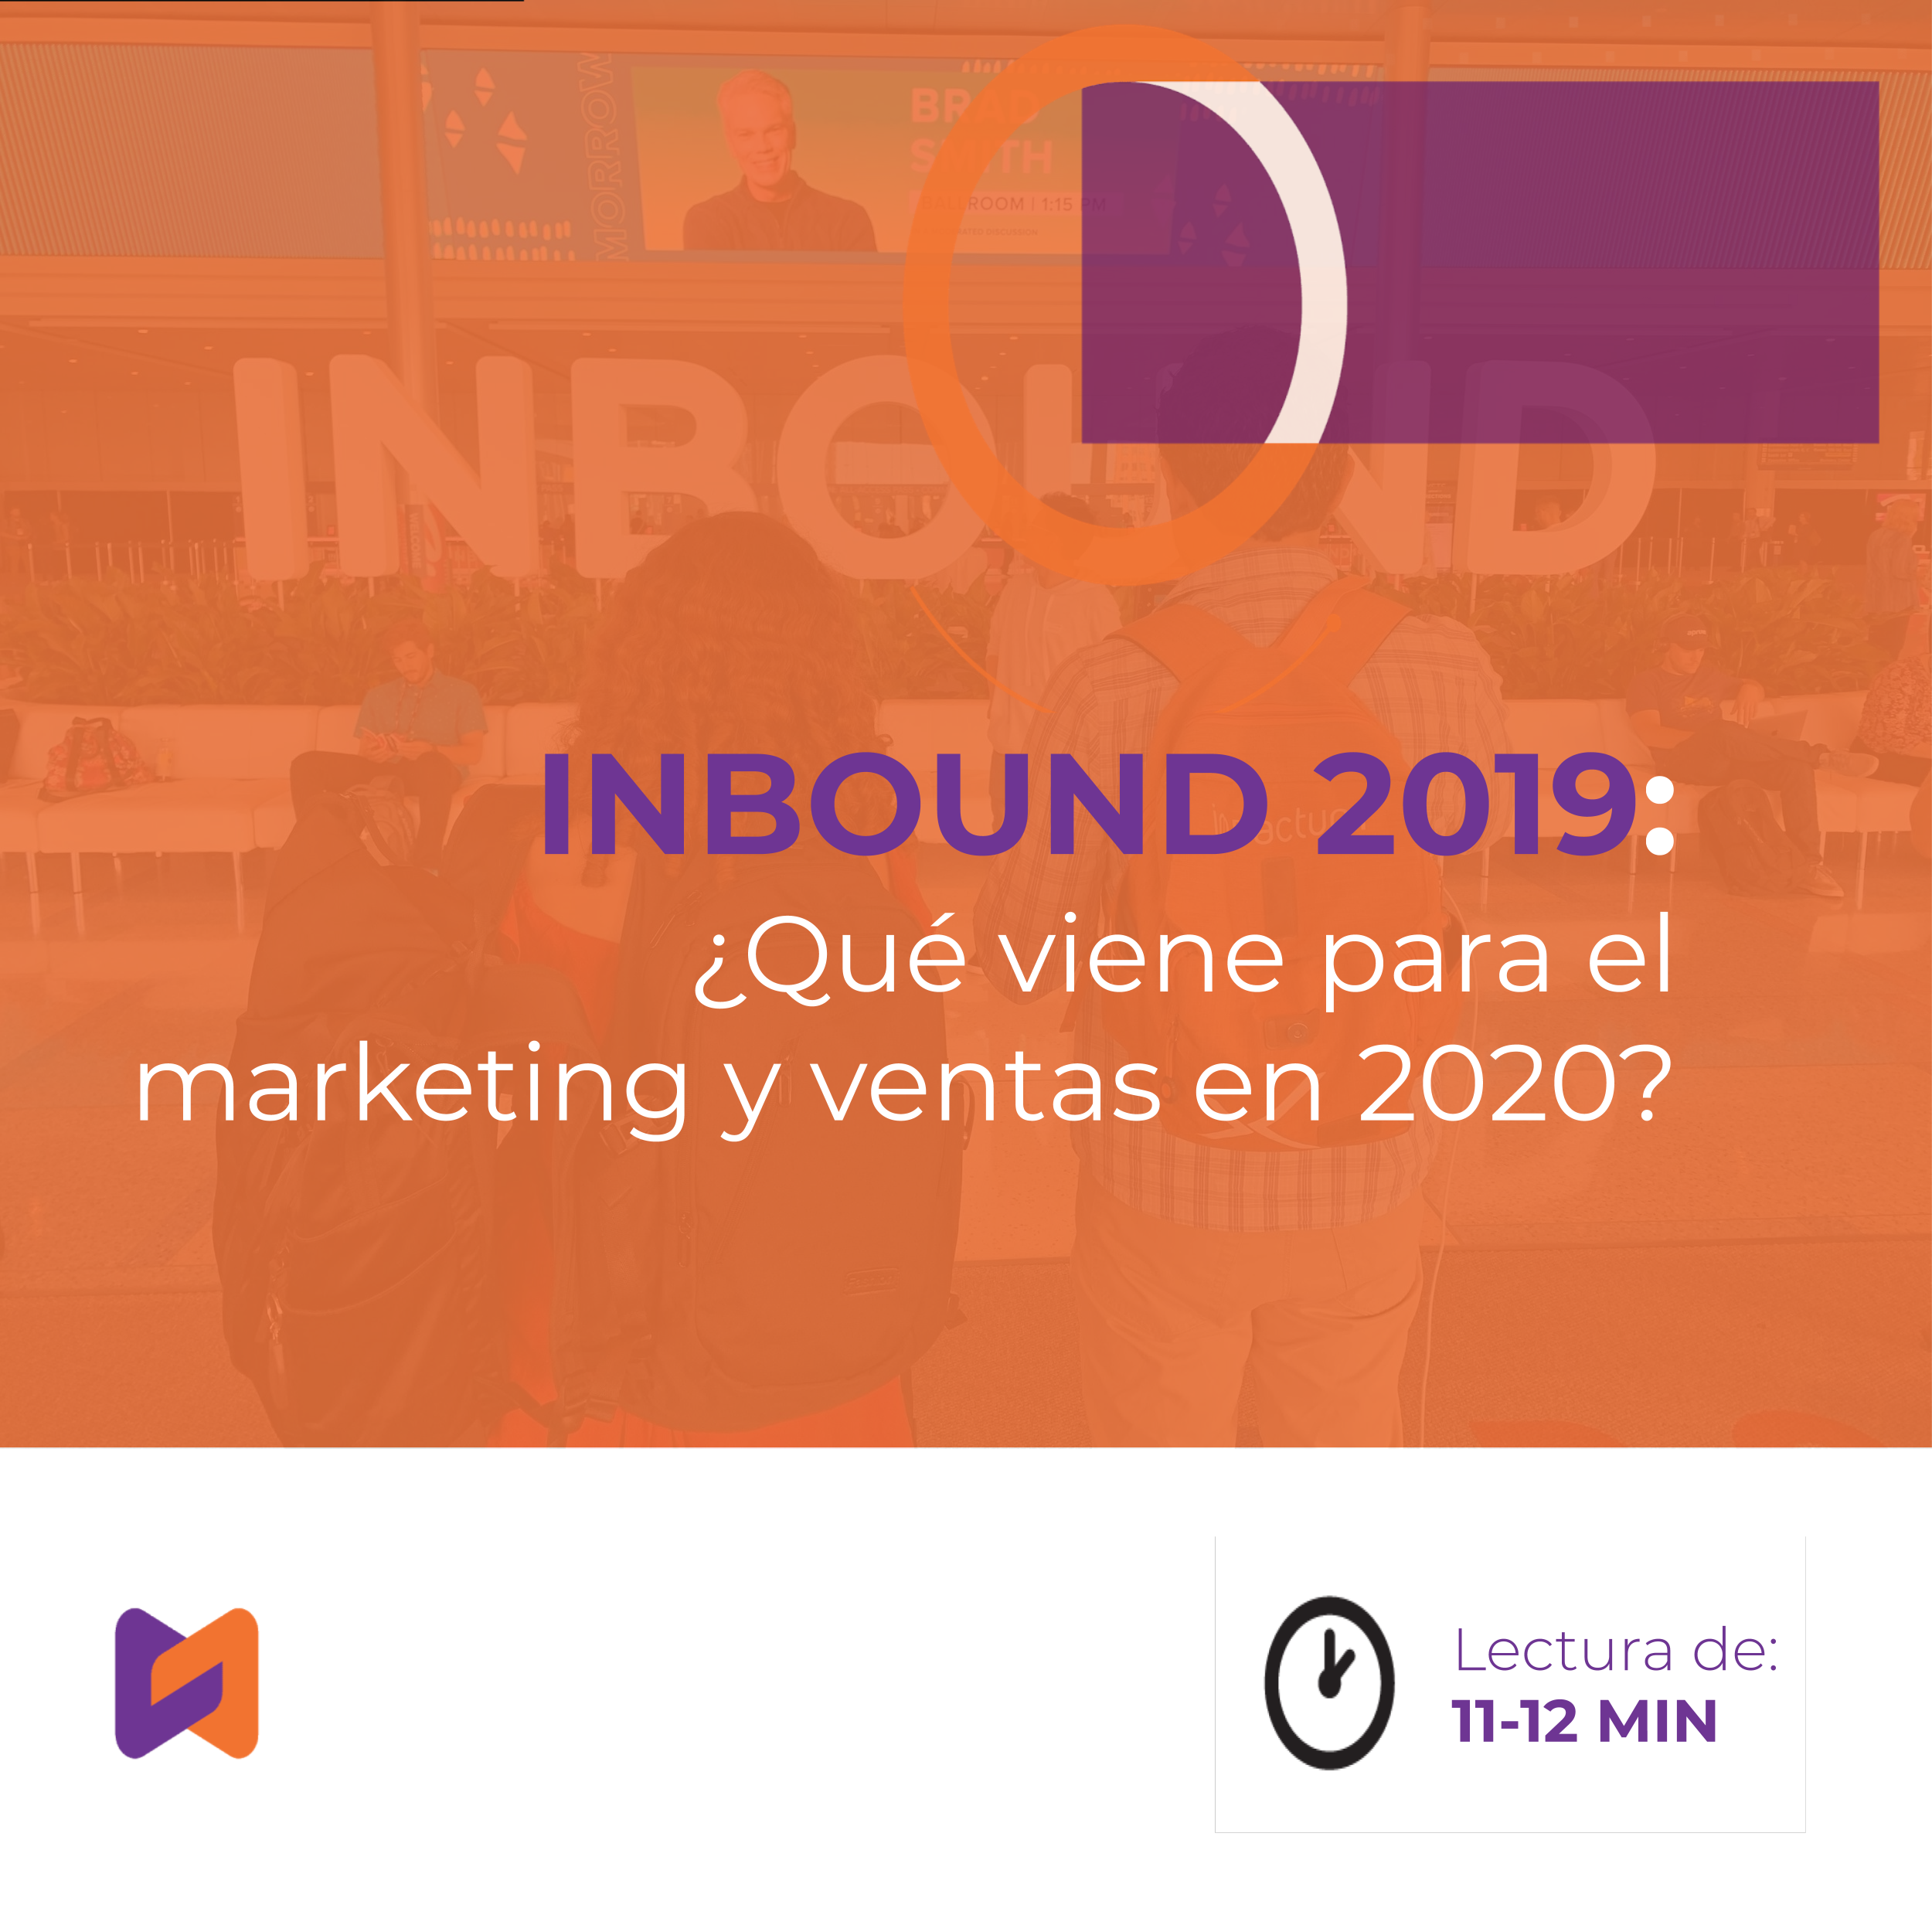 INBOUND 2019: ¿Qué viene para el marketing y ventas en 2020?